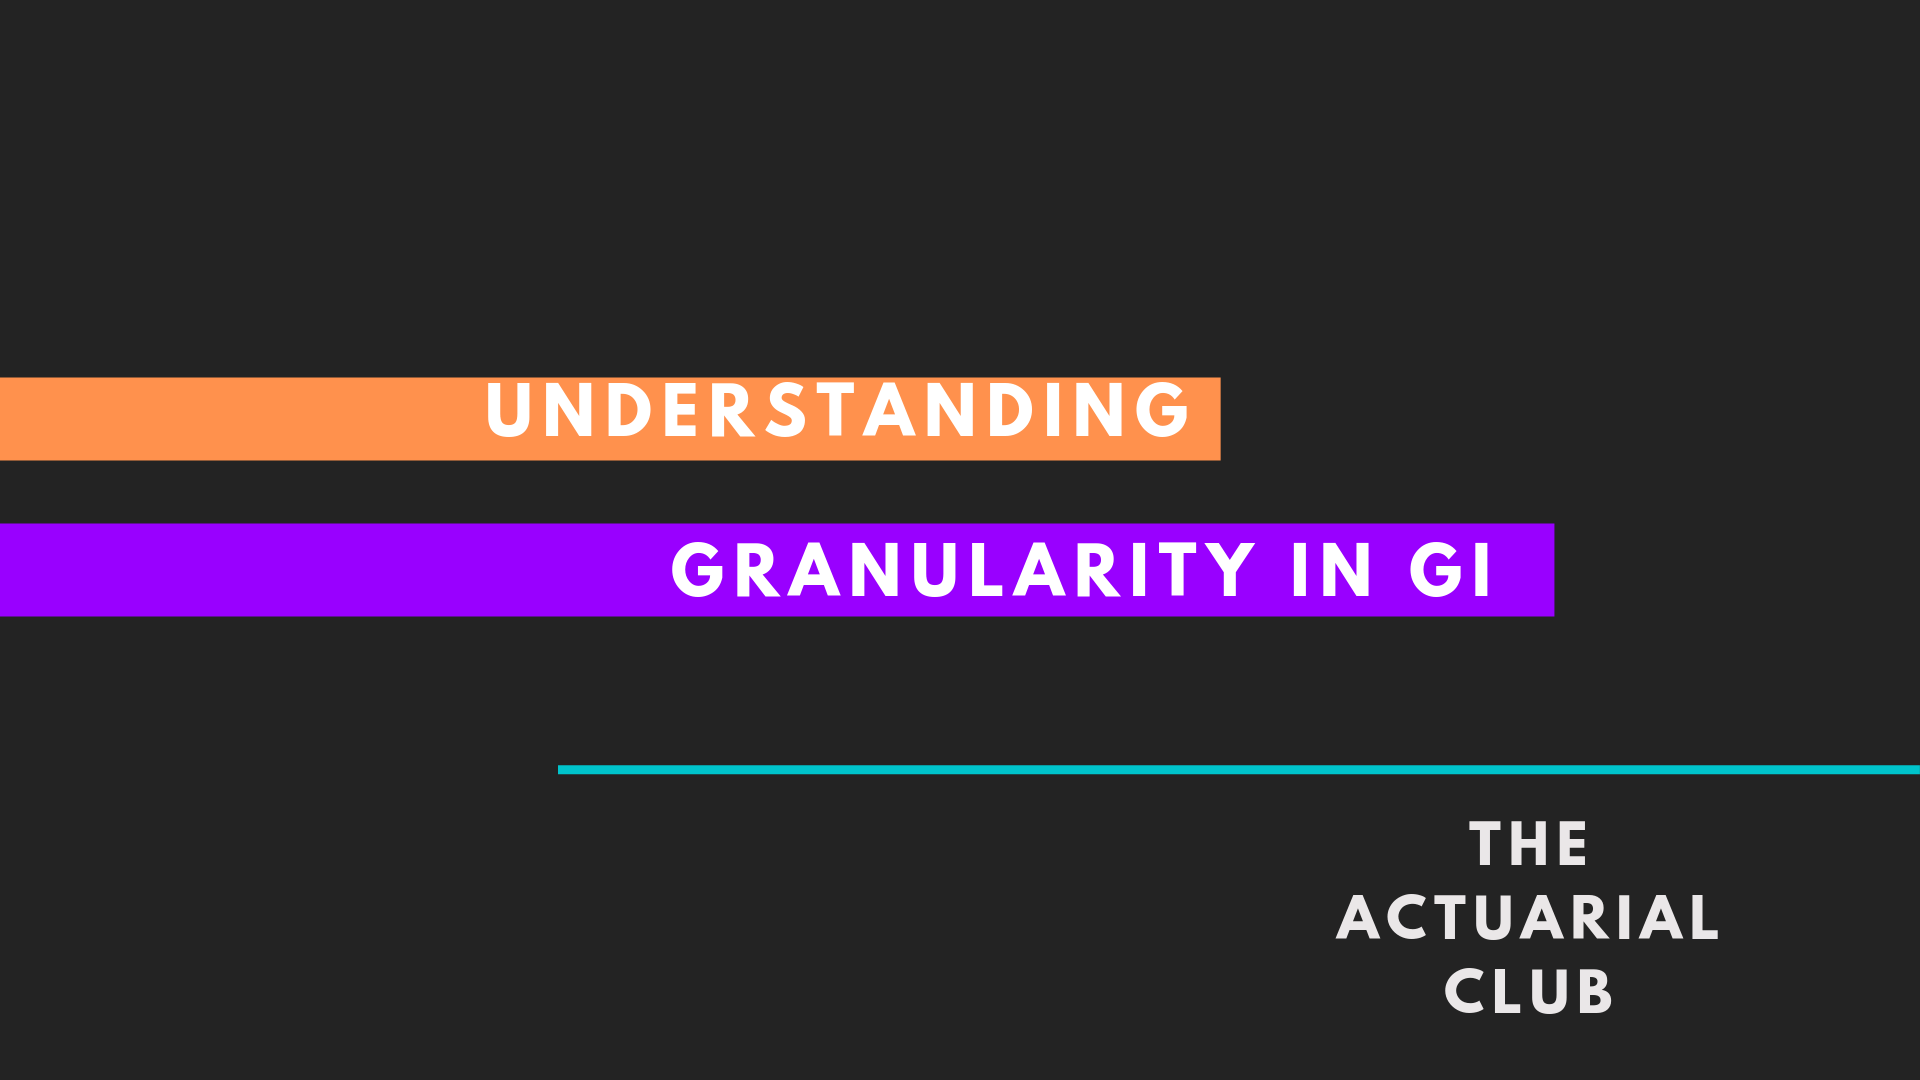 Importance of Granularity in General Insurance